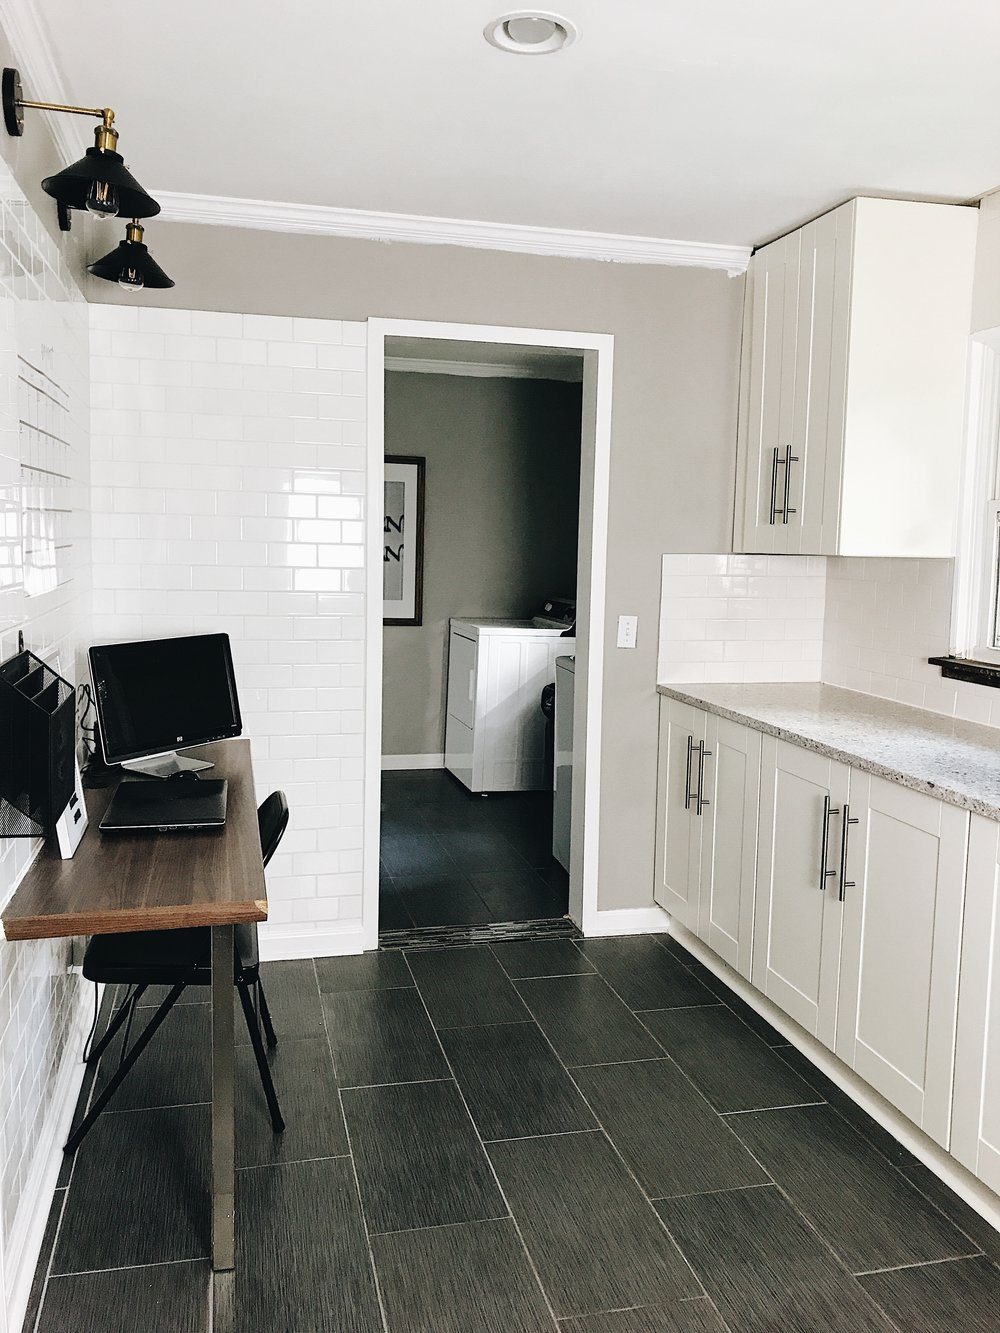 THIS MINIMAL HOUSE KITCHEN NOOK AFTER 2